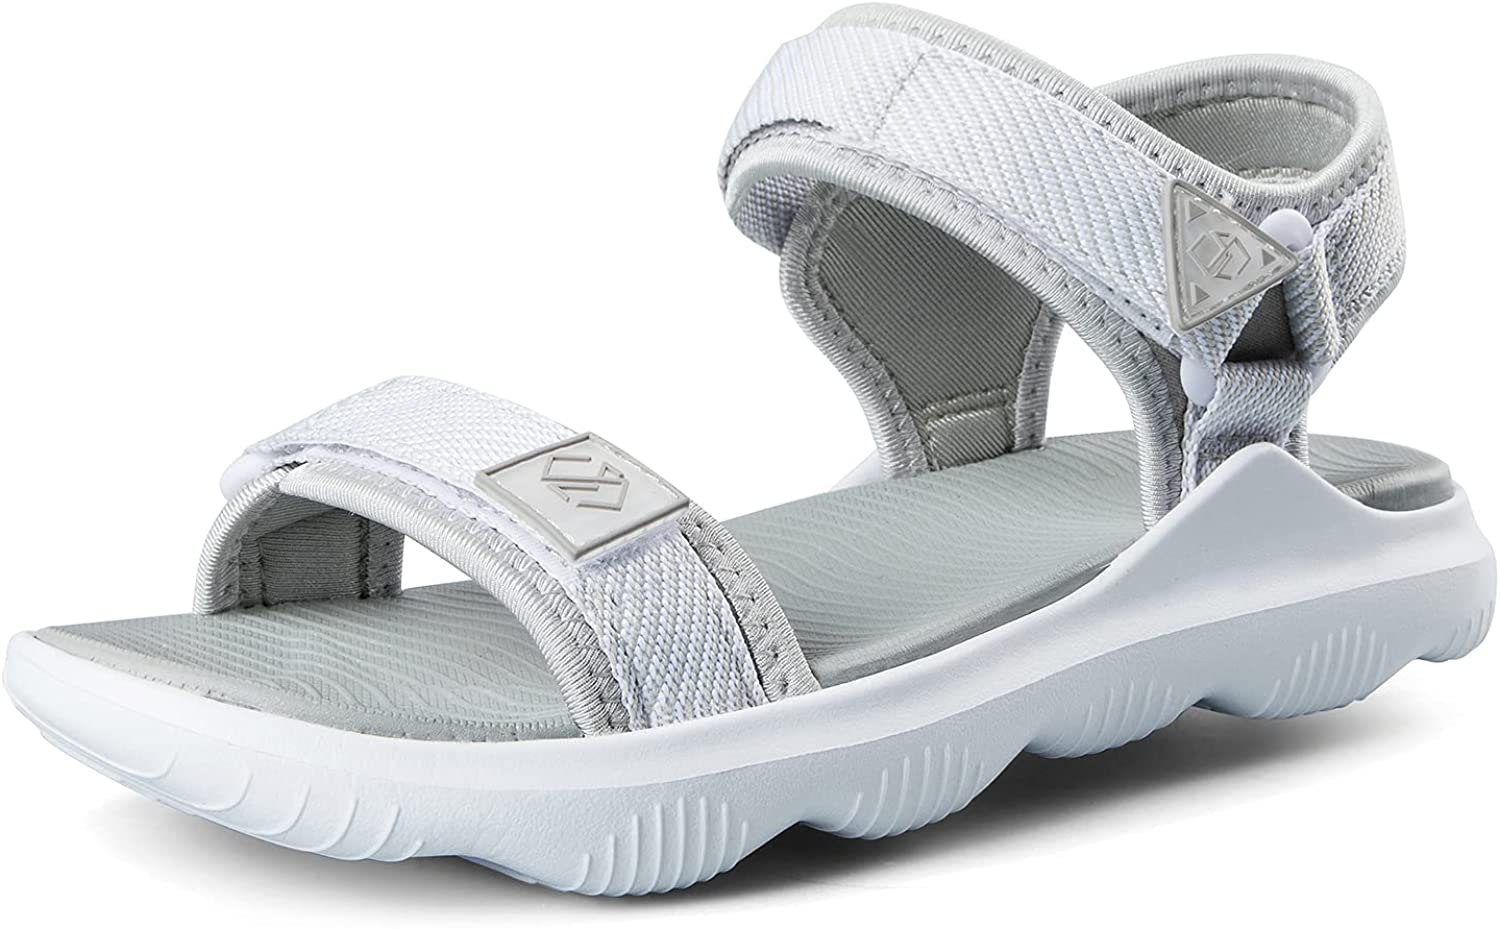 Max 83% OFF COASIS Women's Walking Sandals Comfortab Athletic Ranking TOP10 for Outdoor